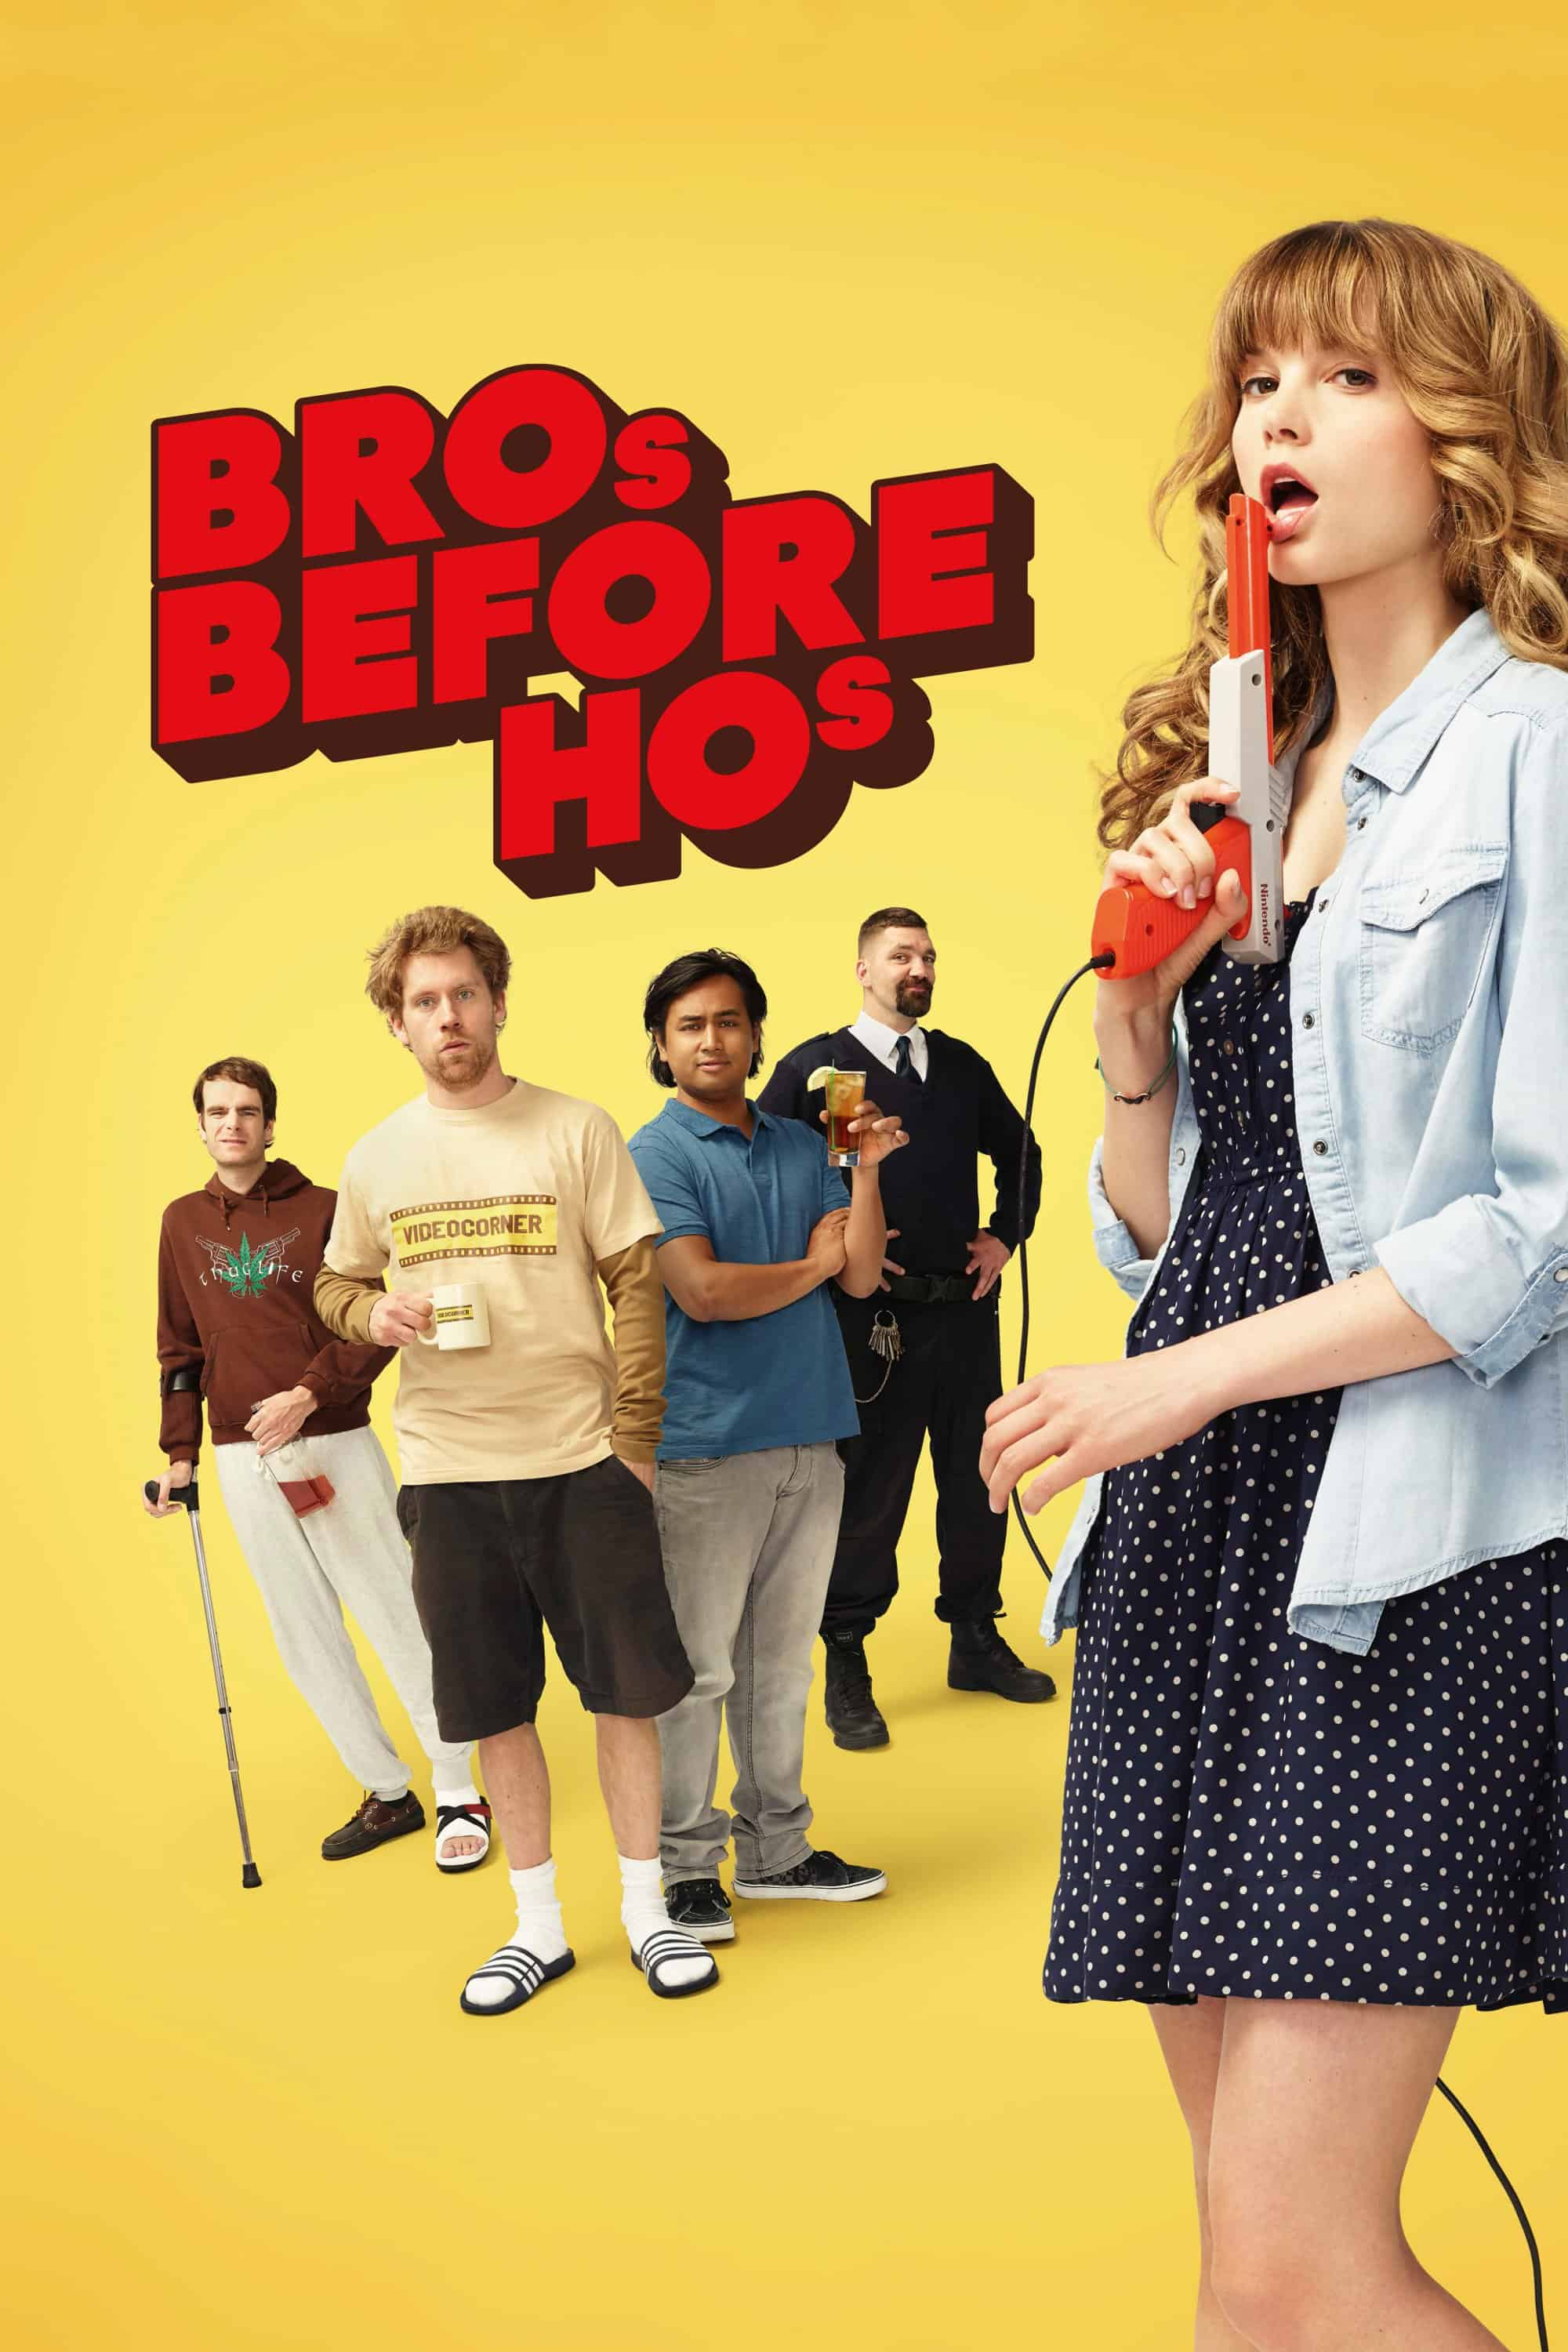 Bros Before Hos, 2013